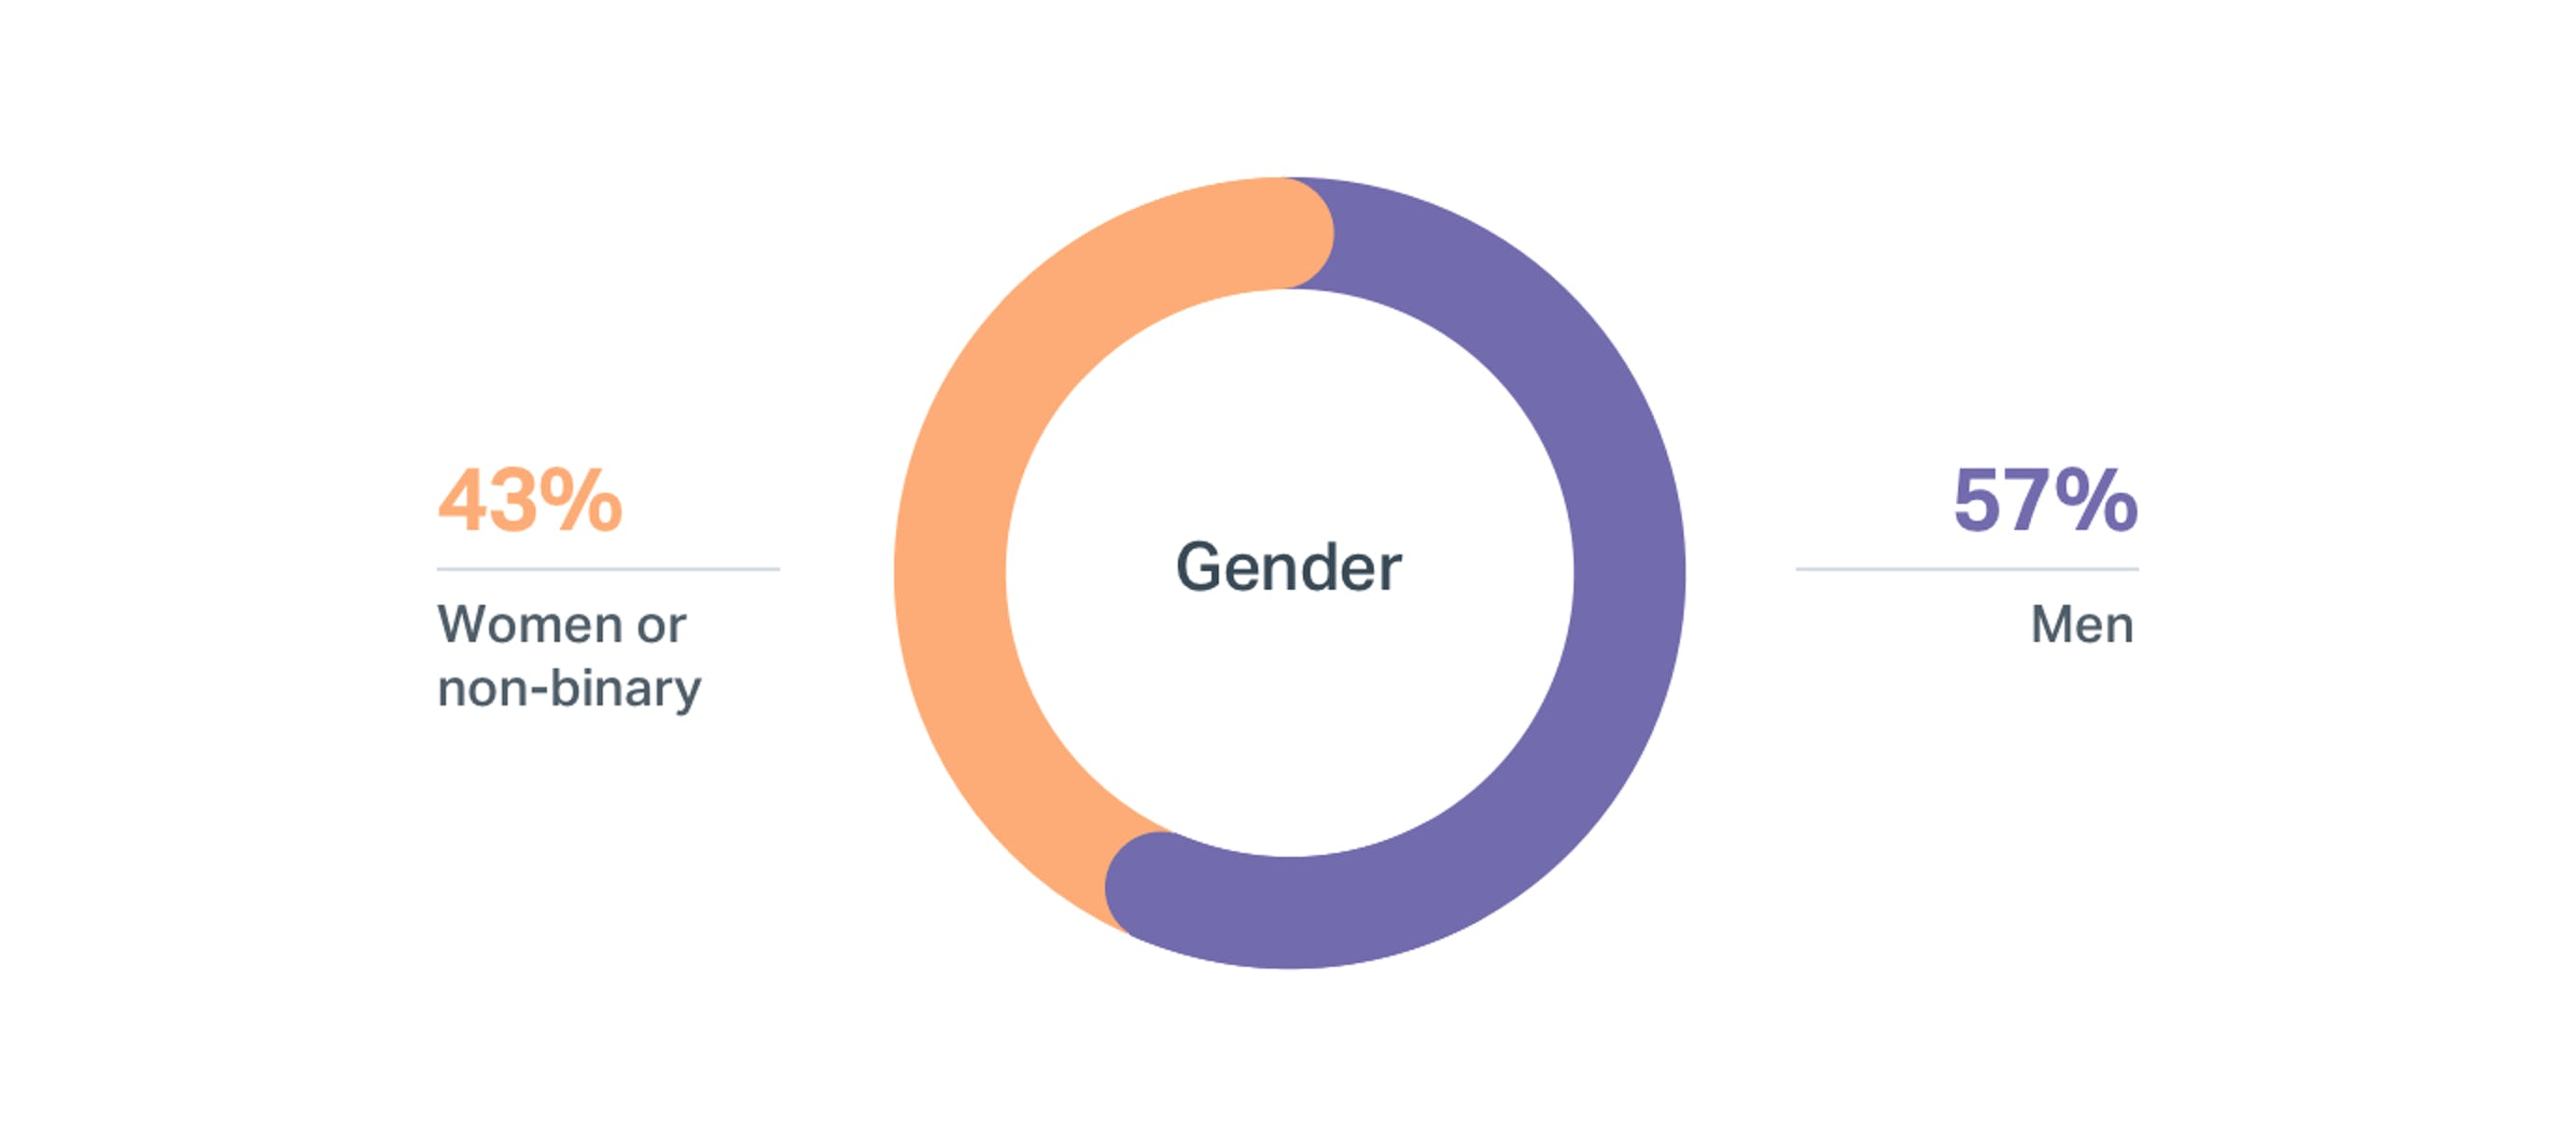 DI wins at Help Scout: Gender - 2018